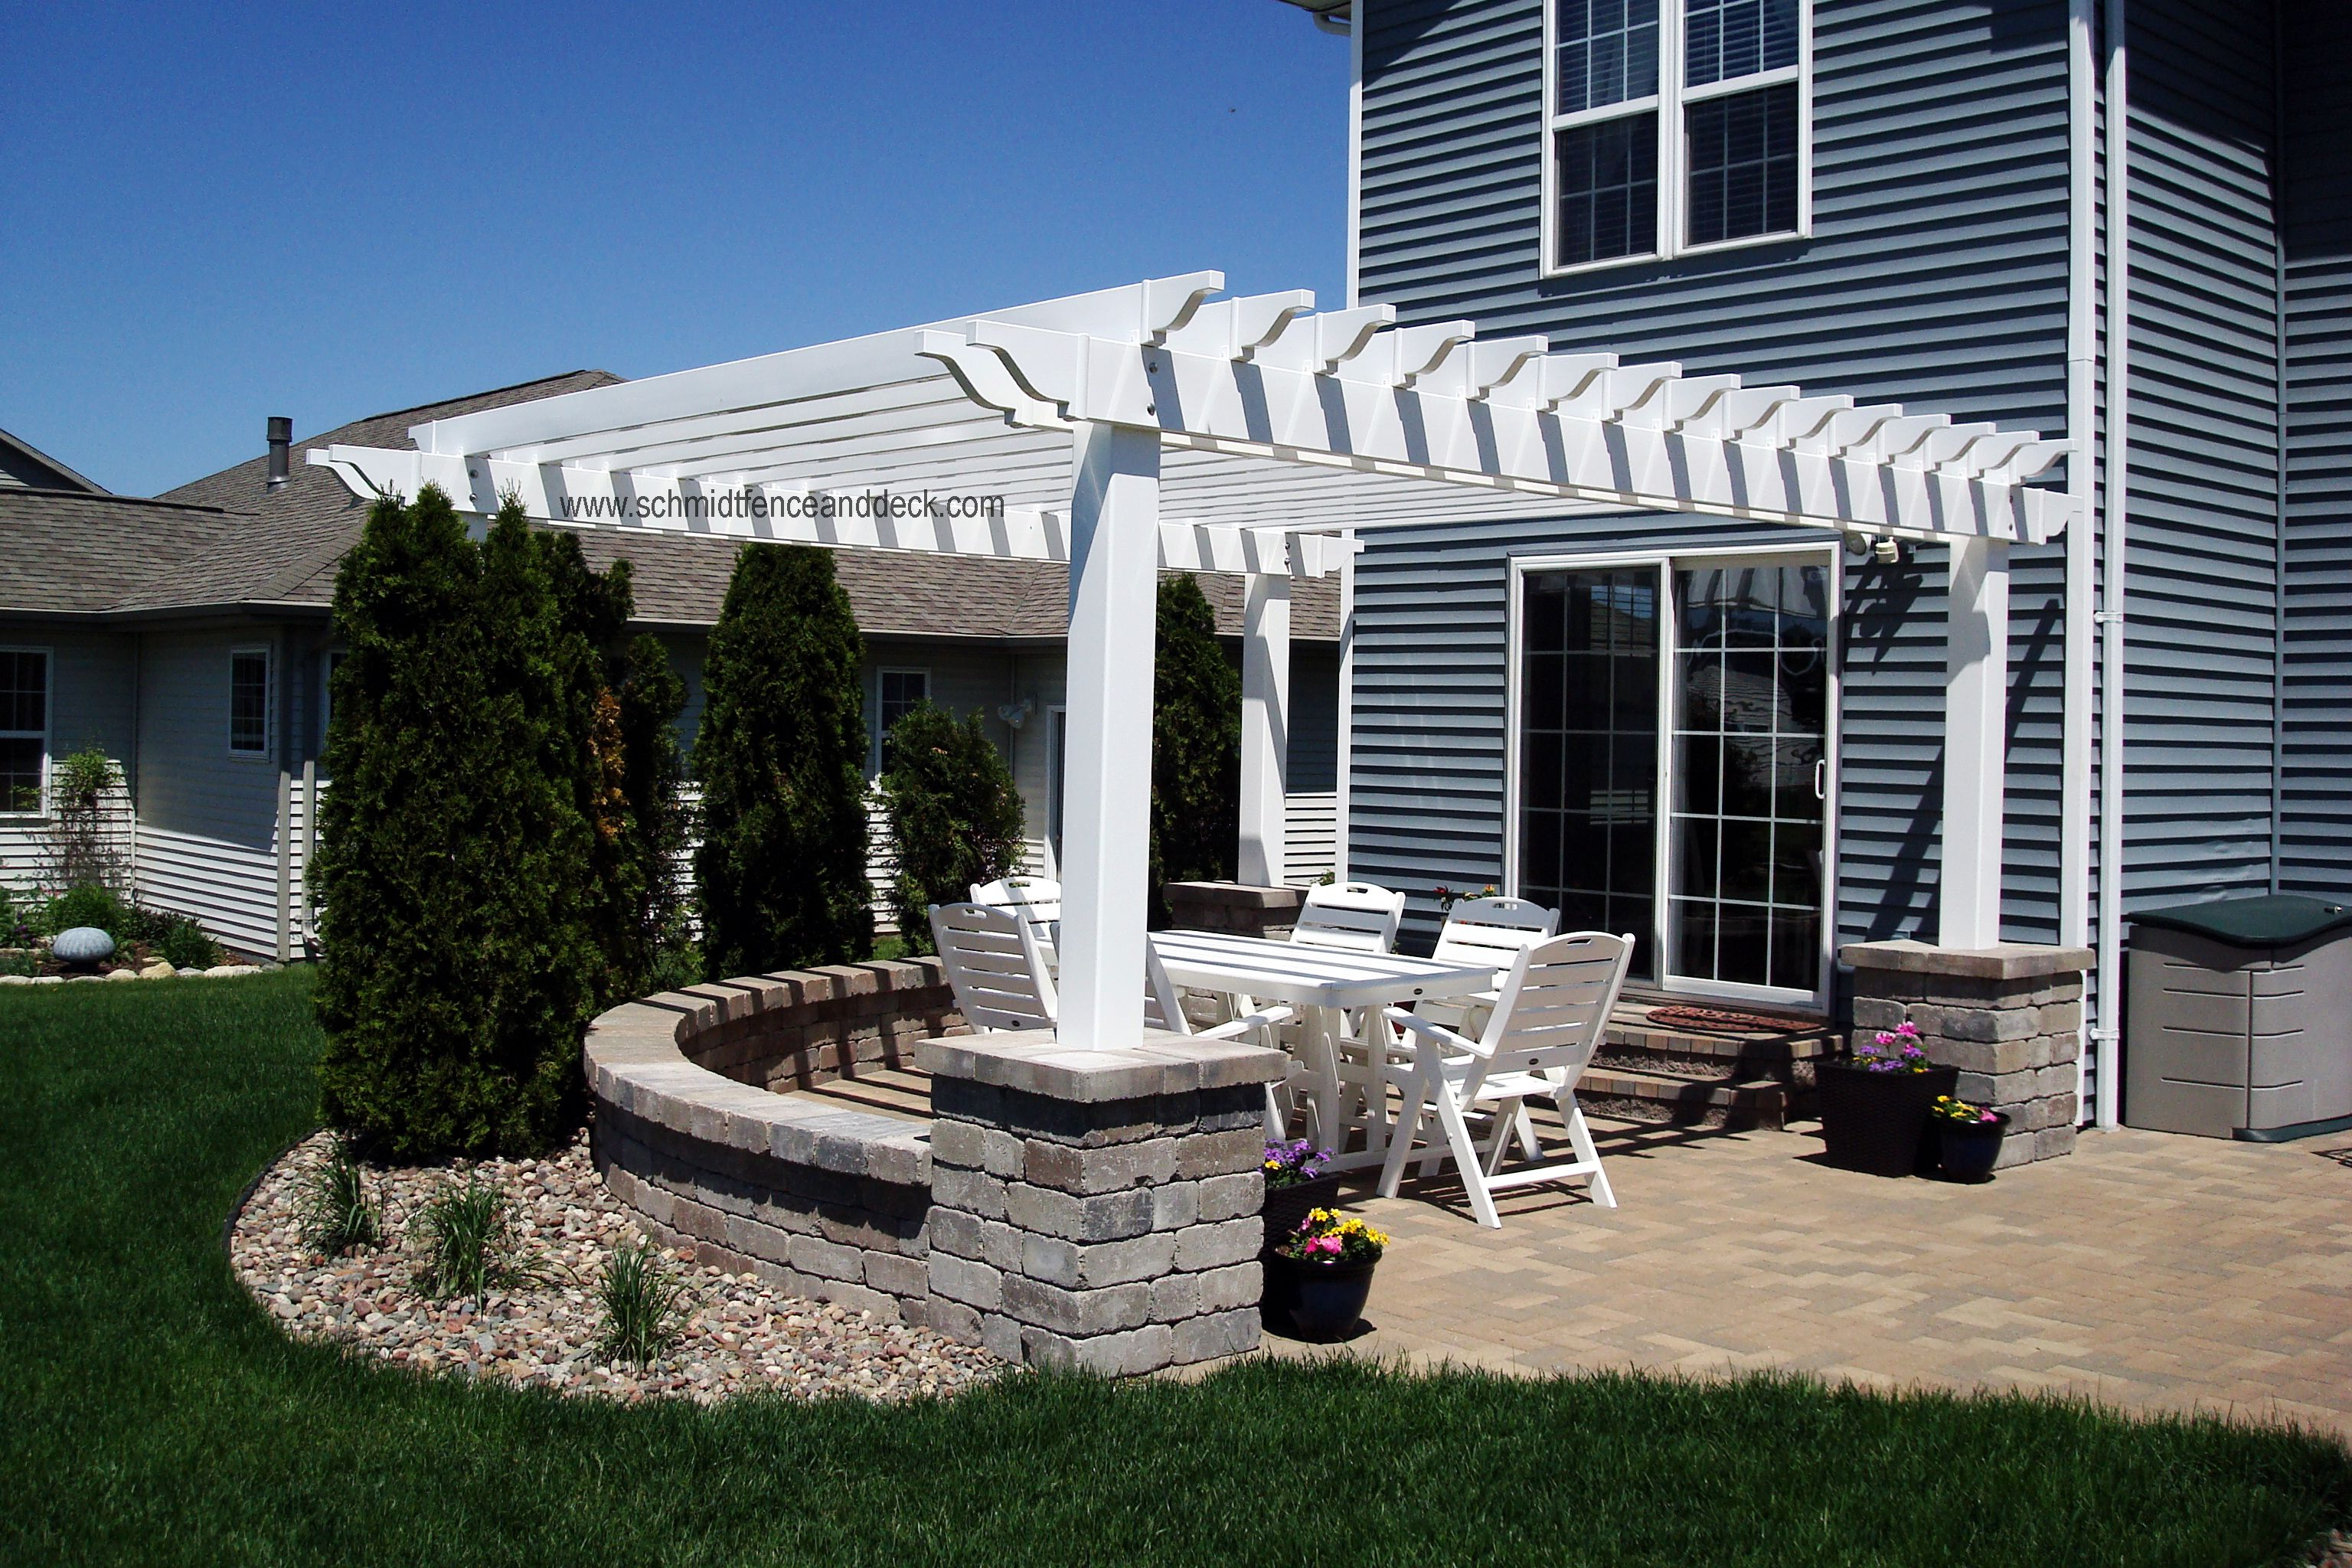 White Vinyl Pergola Over Brick Patio, With Concrete Columns And Seat Wall.